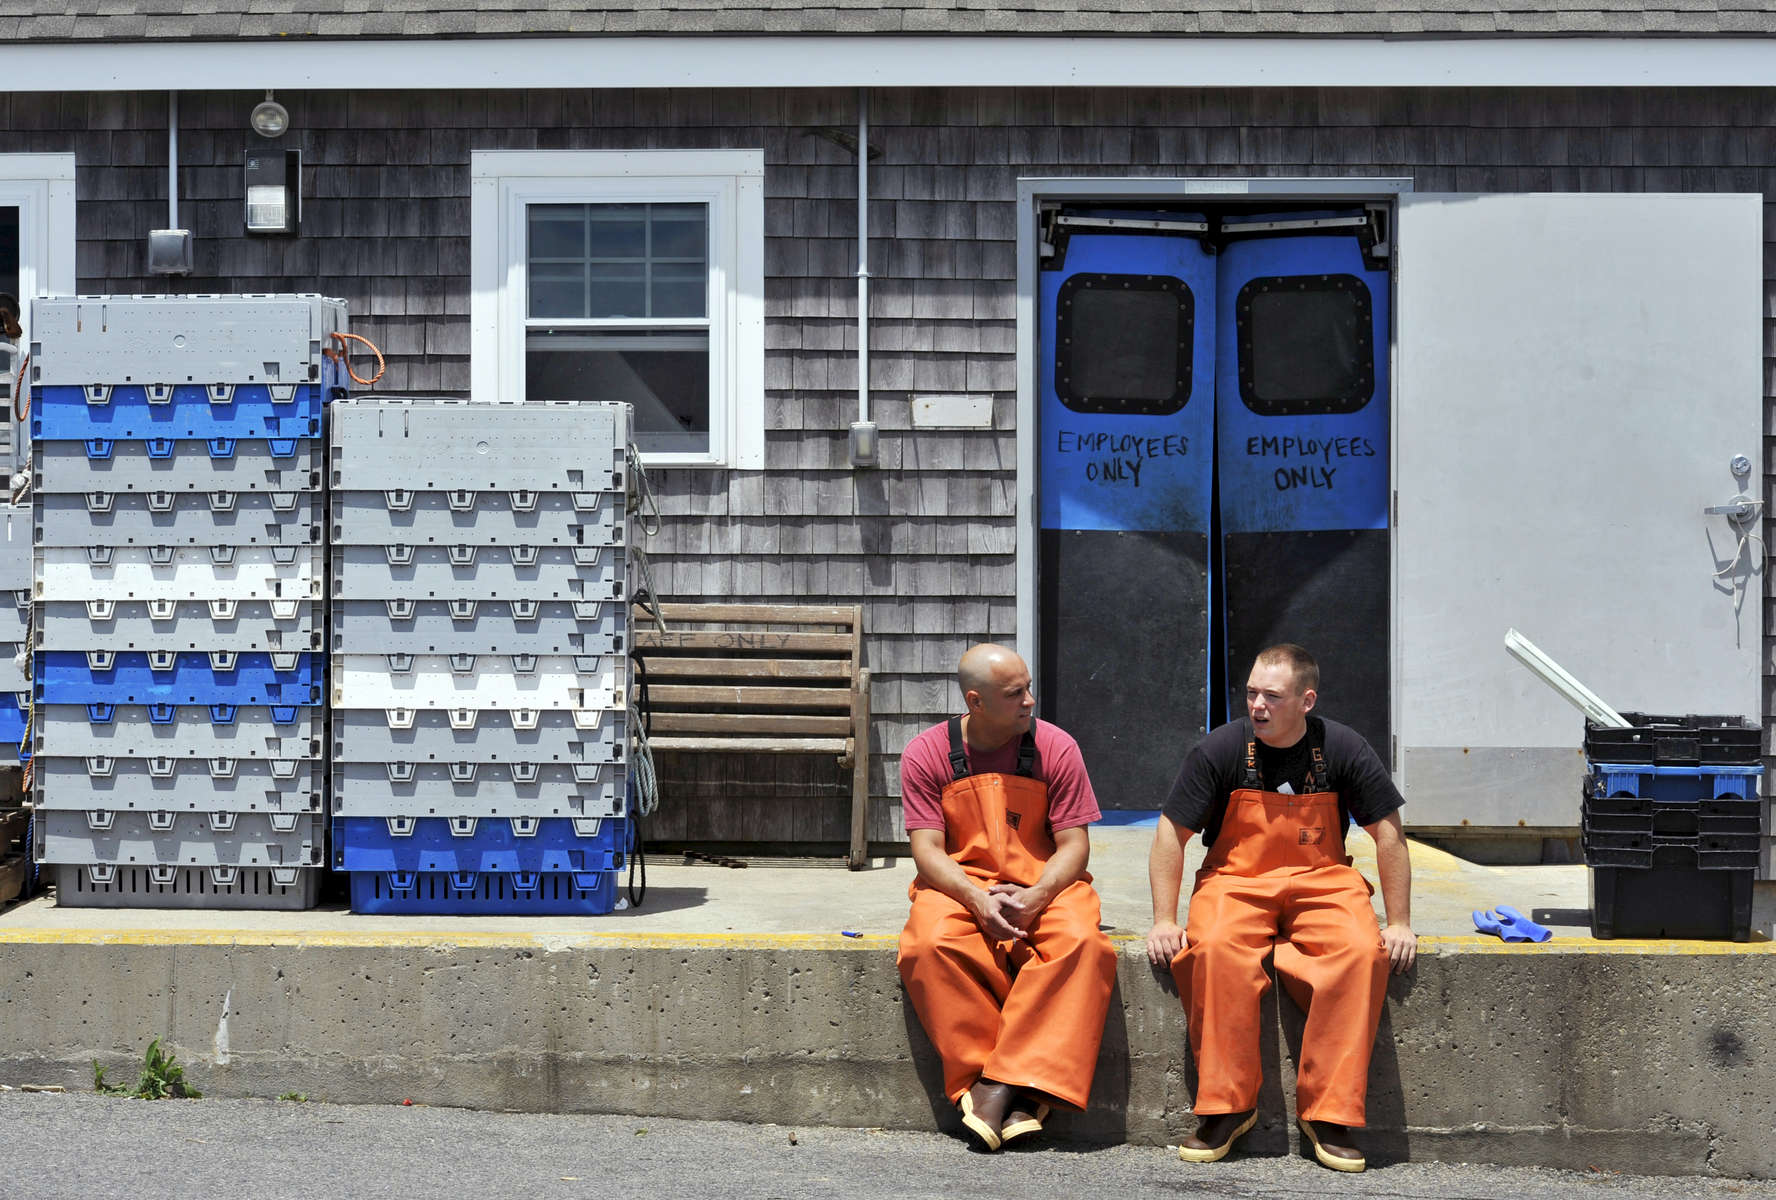 CHATHAM -- 062712 -- From left, onshore processors Mario Botelhofilho of South Yarmouth and Jared Taylor of Chatham catch a little sun while they chat on a break from culling catch at the Chatham Fish Pier.  Cape Cod Times/Christine Hochkeppel